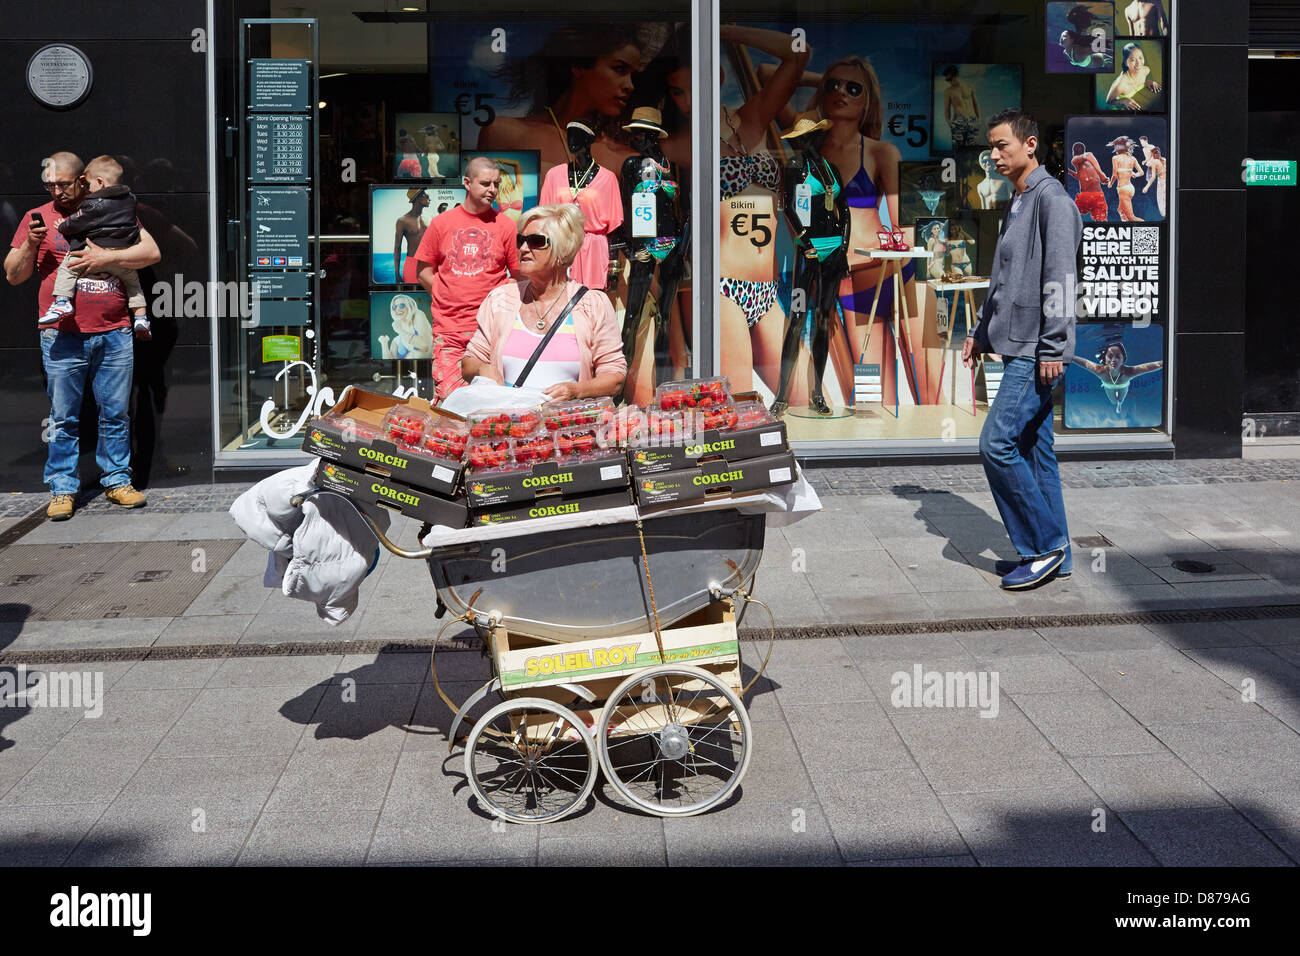 Dublin Street trader sells strawberries from a pram. Mary Street, Dublin, Republic of Ireland - Stock Image